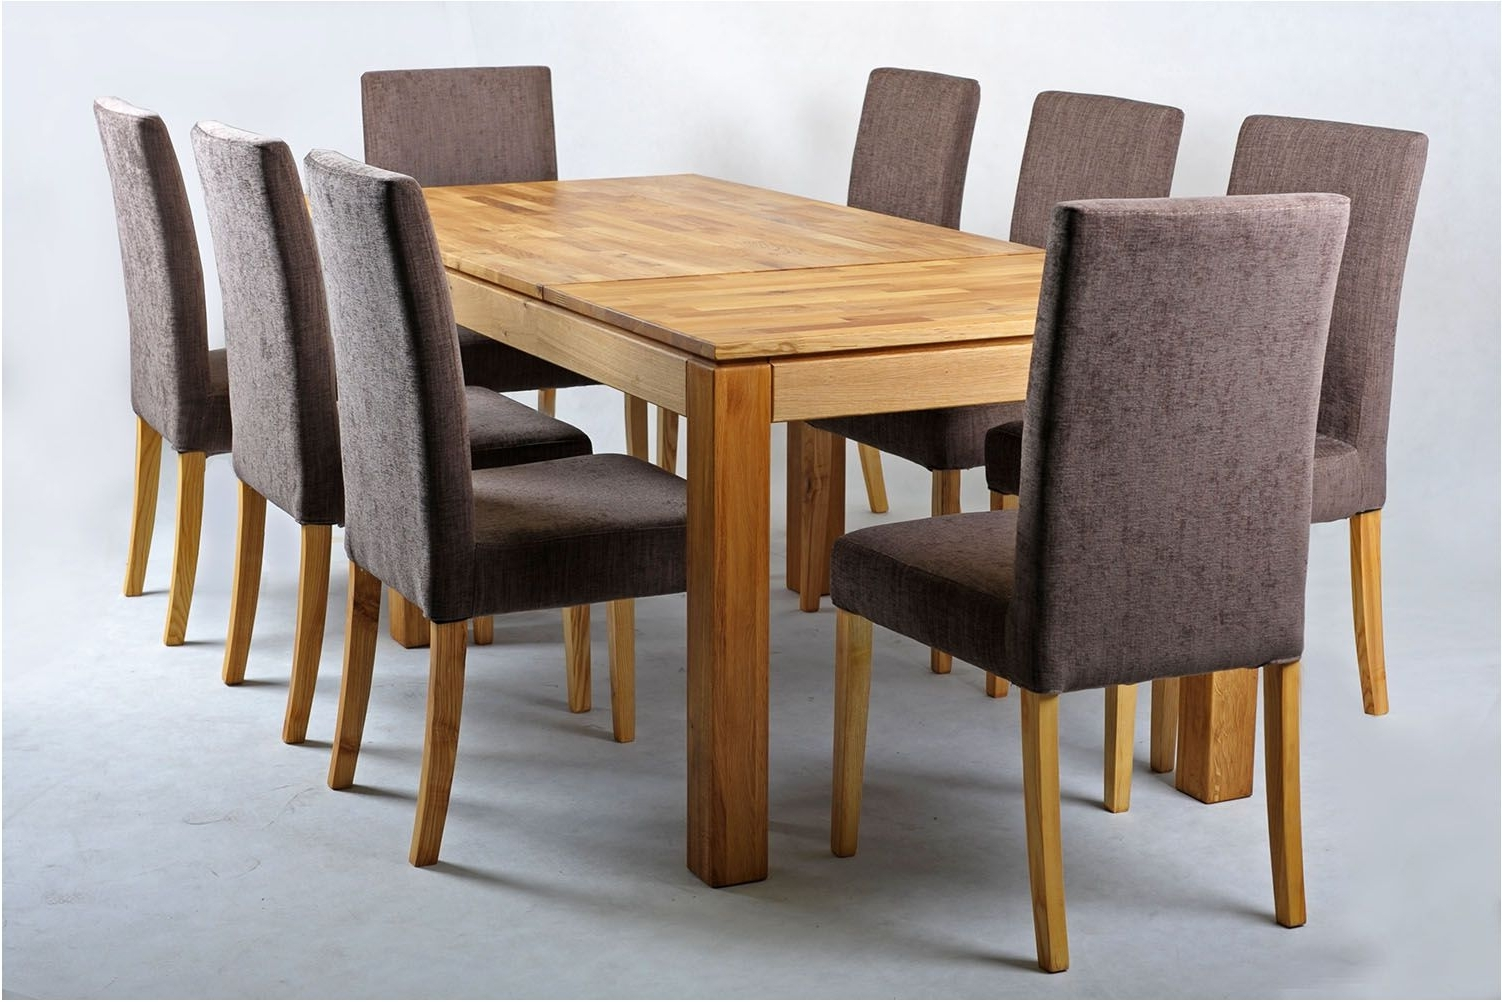 Most Current Terrific Solid Oak Extending Dining Table And Chairs Set Home Goods Regarding Extending Dining Table Sets (View 18 of 25)